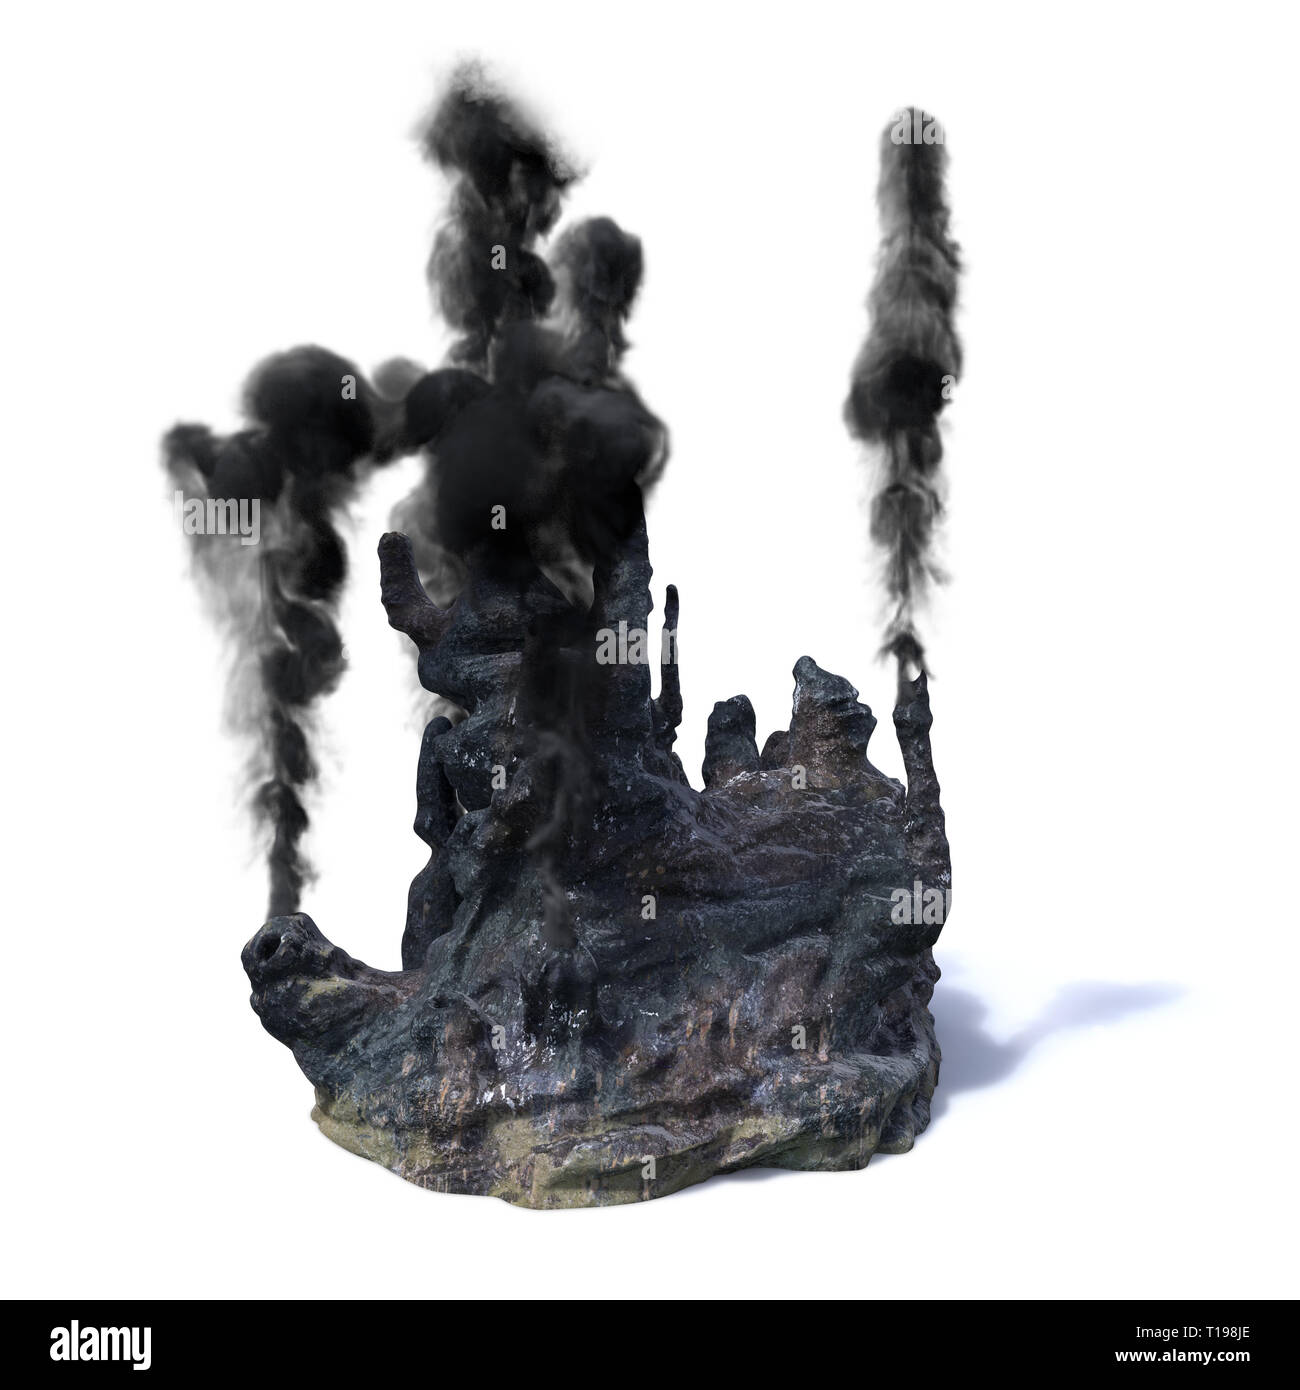 hydrothermal vents, black smoker (3d rendering isolated on white background) - Stock Image